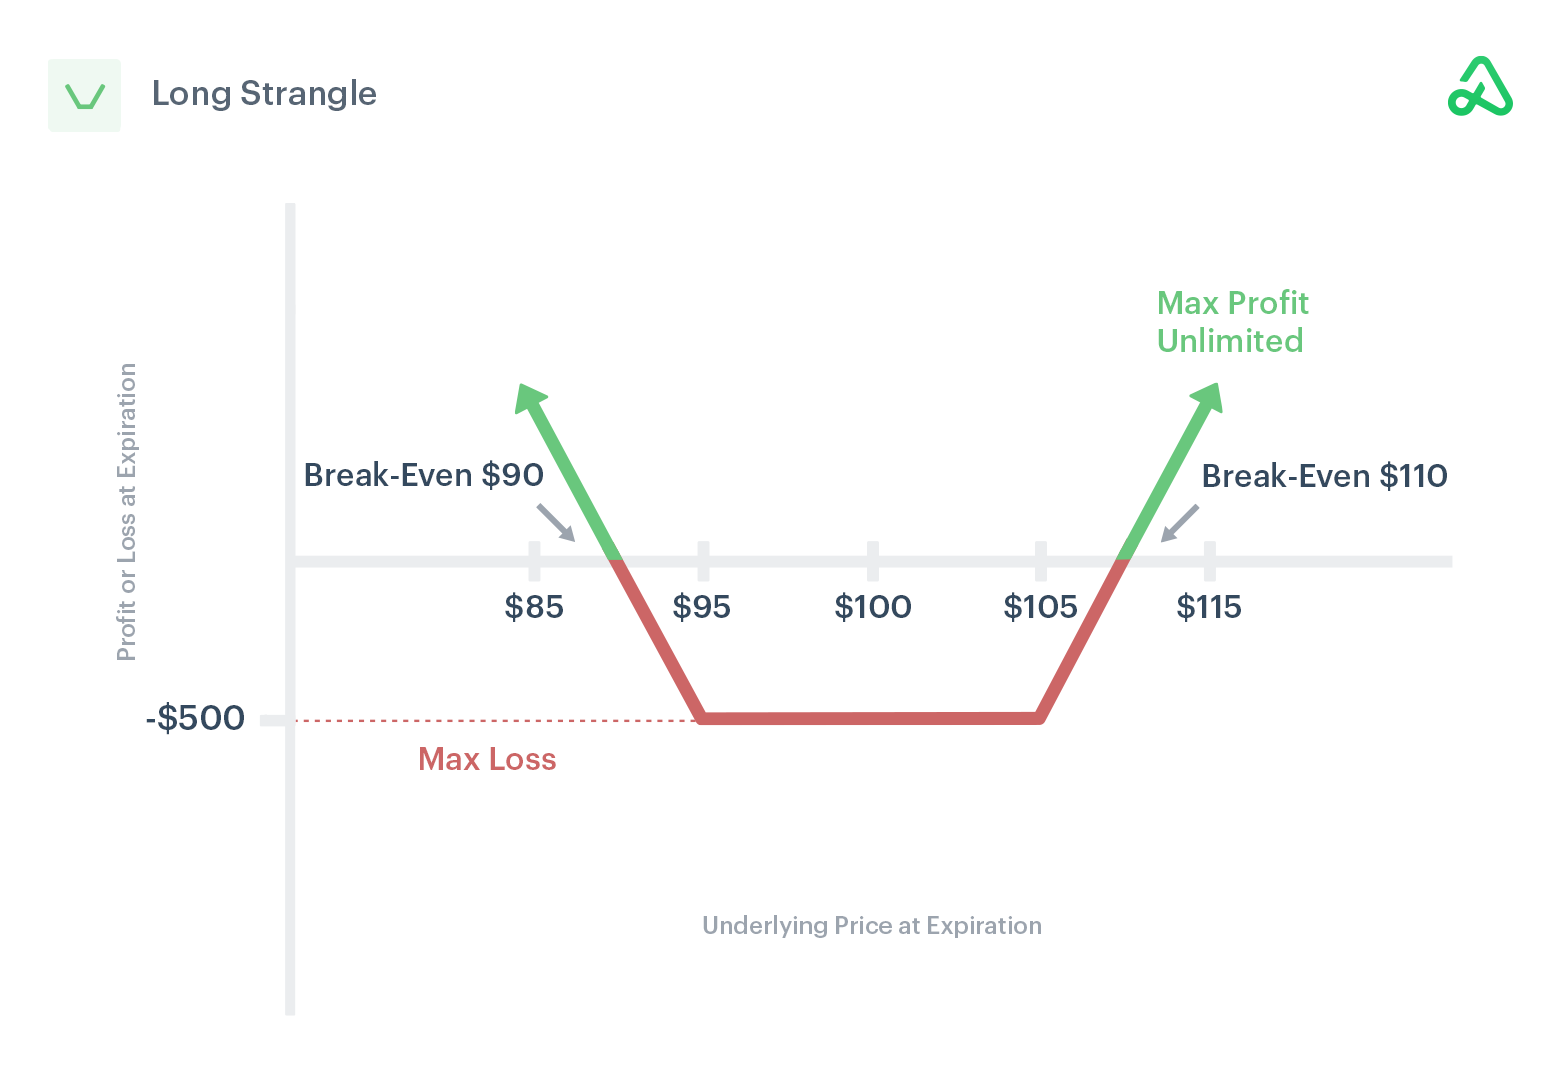 Image of long strangle payoff diagram showing max profit, max loss, and break-even points